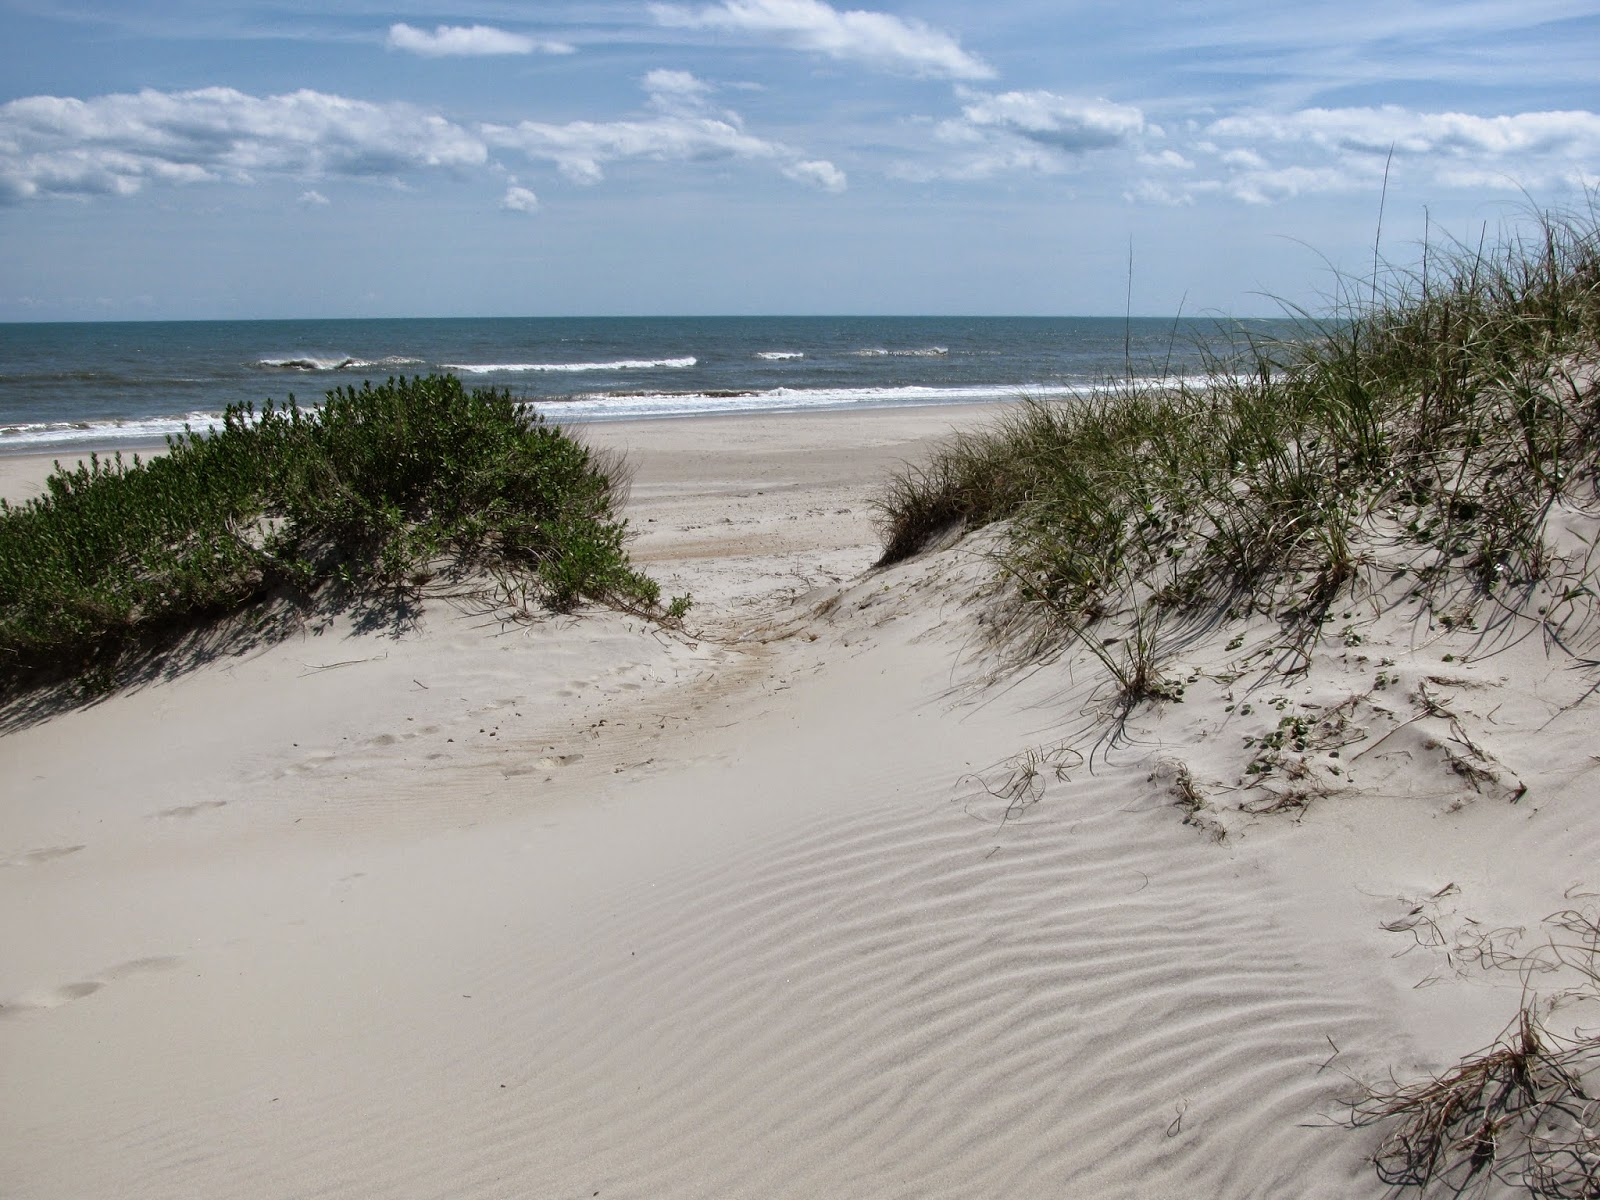 Carolina Foodie: TOP 10 GREAT EATS IN THE OBX